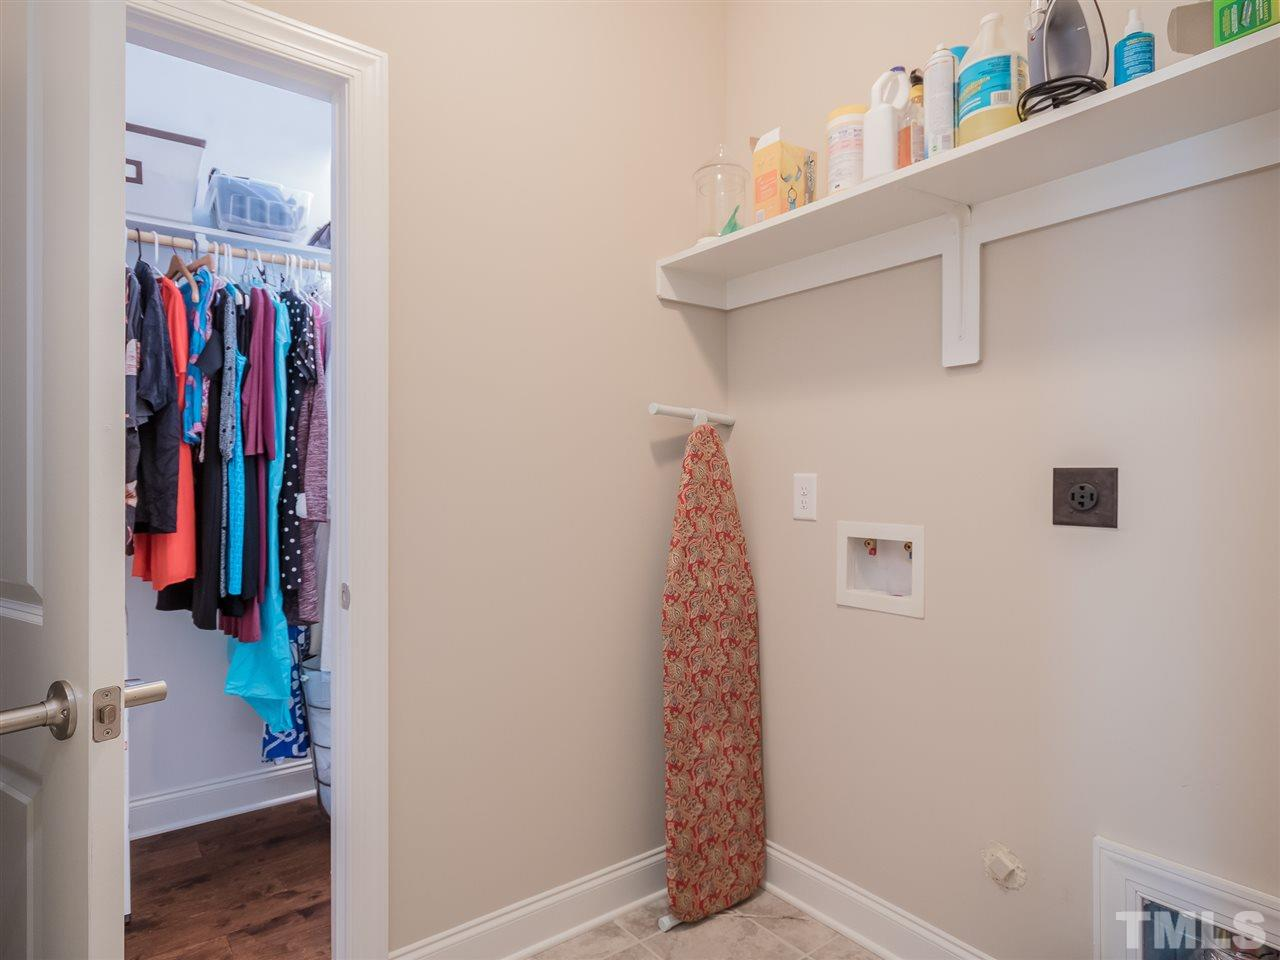 Access to the laundry room from the Owner's closet and the hall. Notice the wood floors in the generous walk-in closet.